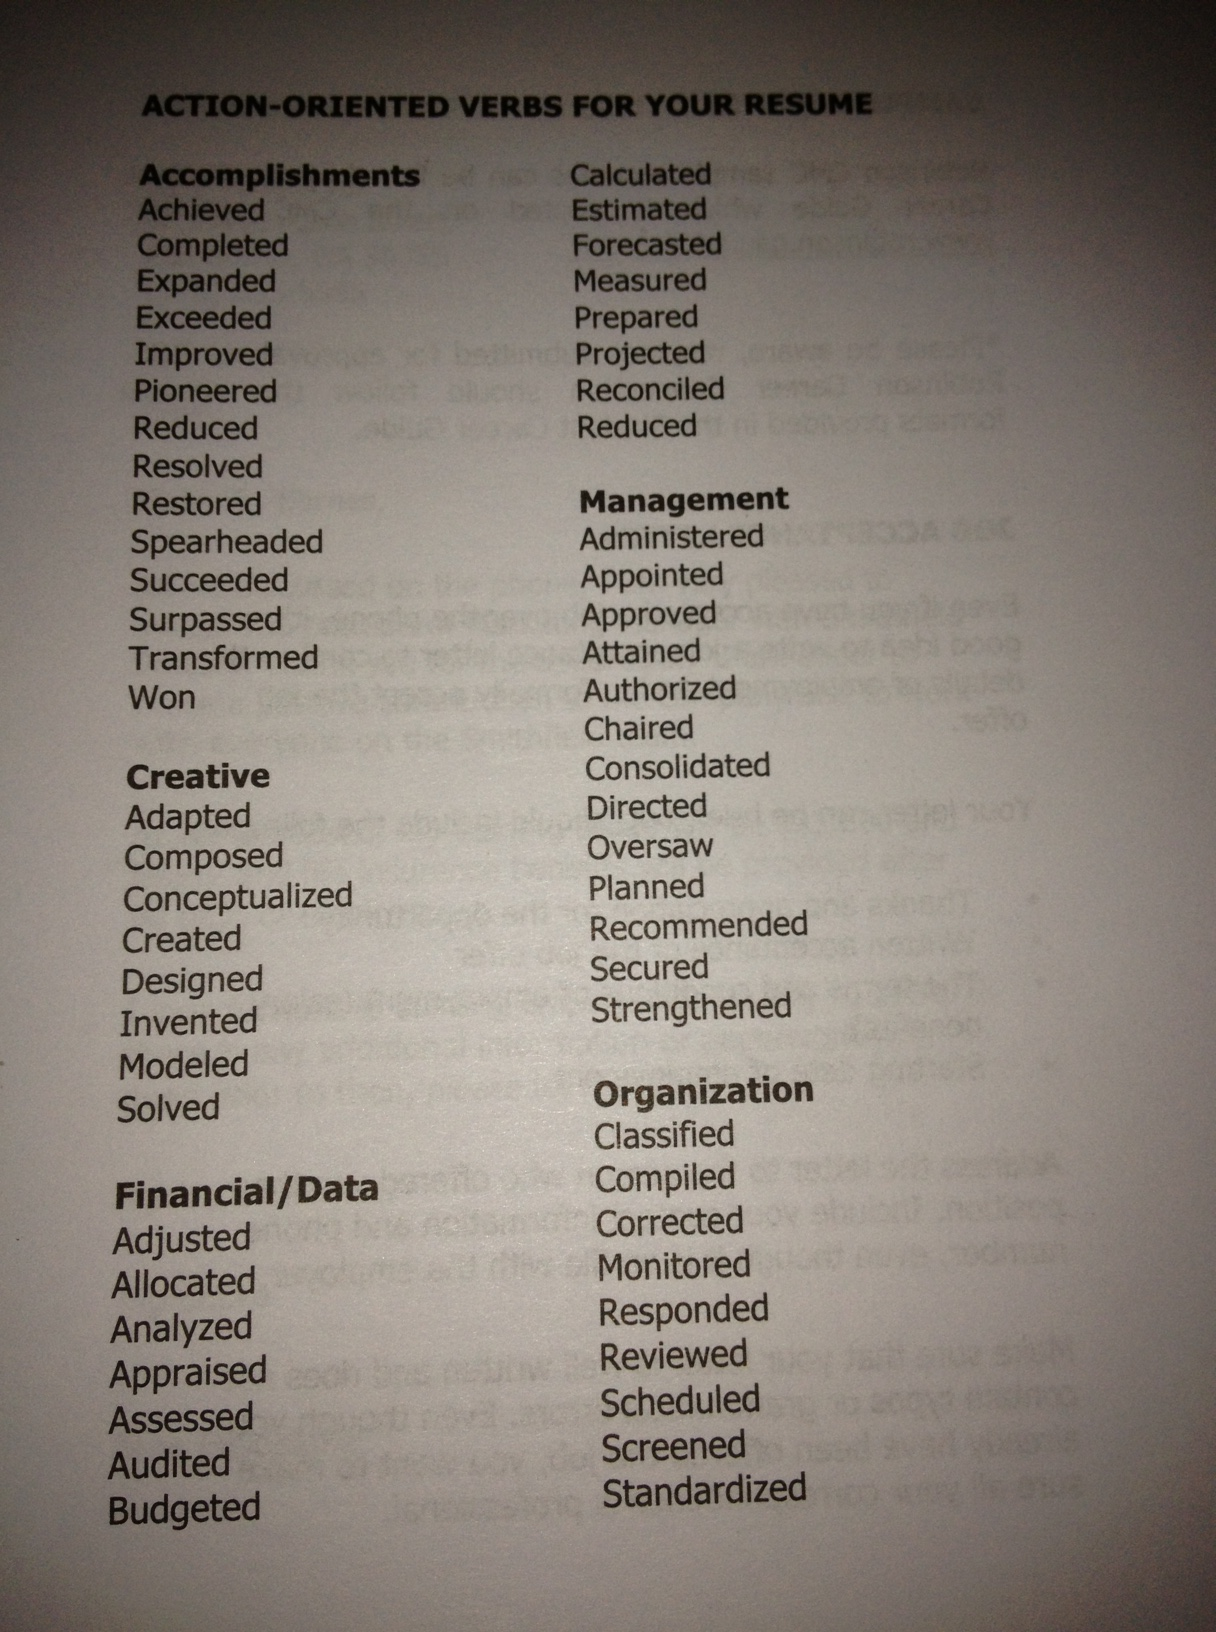 ActionOriented Verbs for Resume